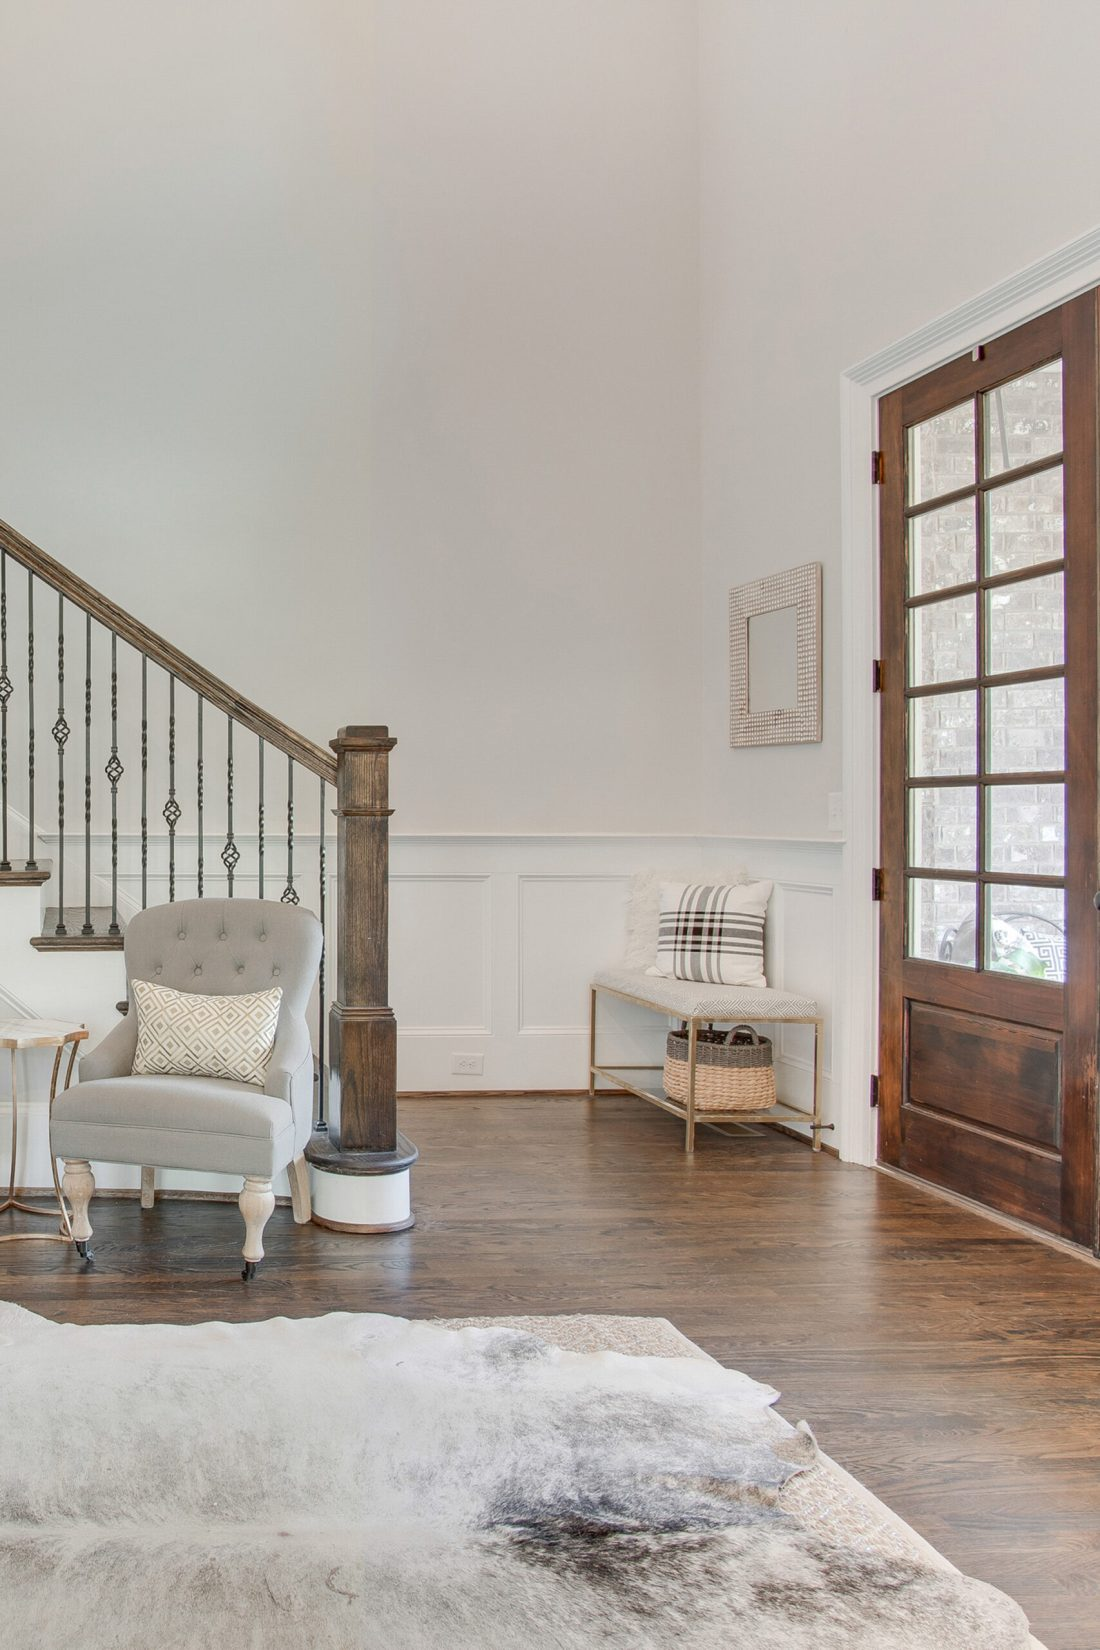 3 Tips to Prepare your House to Sell quickly.  Follow this quick, but in-depth  Guide getting your house ready to sparkle and leave a lasting impression on potential home buyers.   || Darling Darleen Top Lifestyle CT Blogger and real estate agent #realestate #homebuying #homeselling #sellingahome